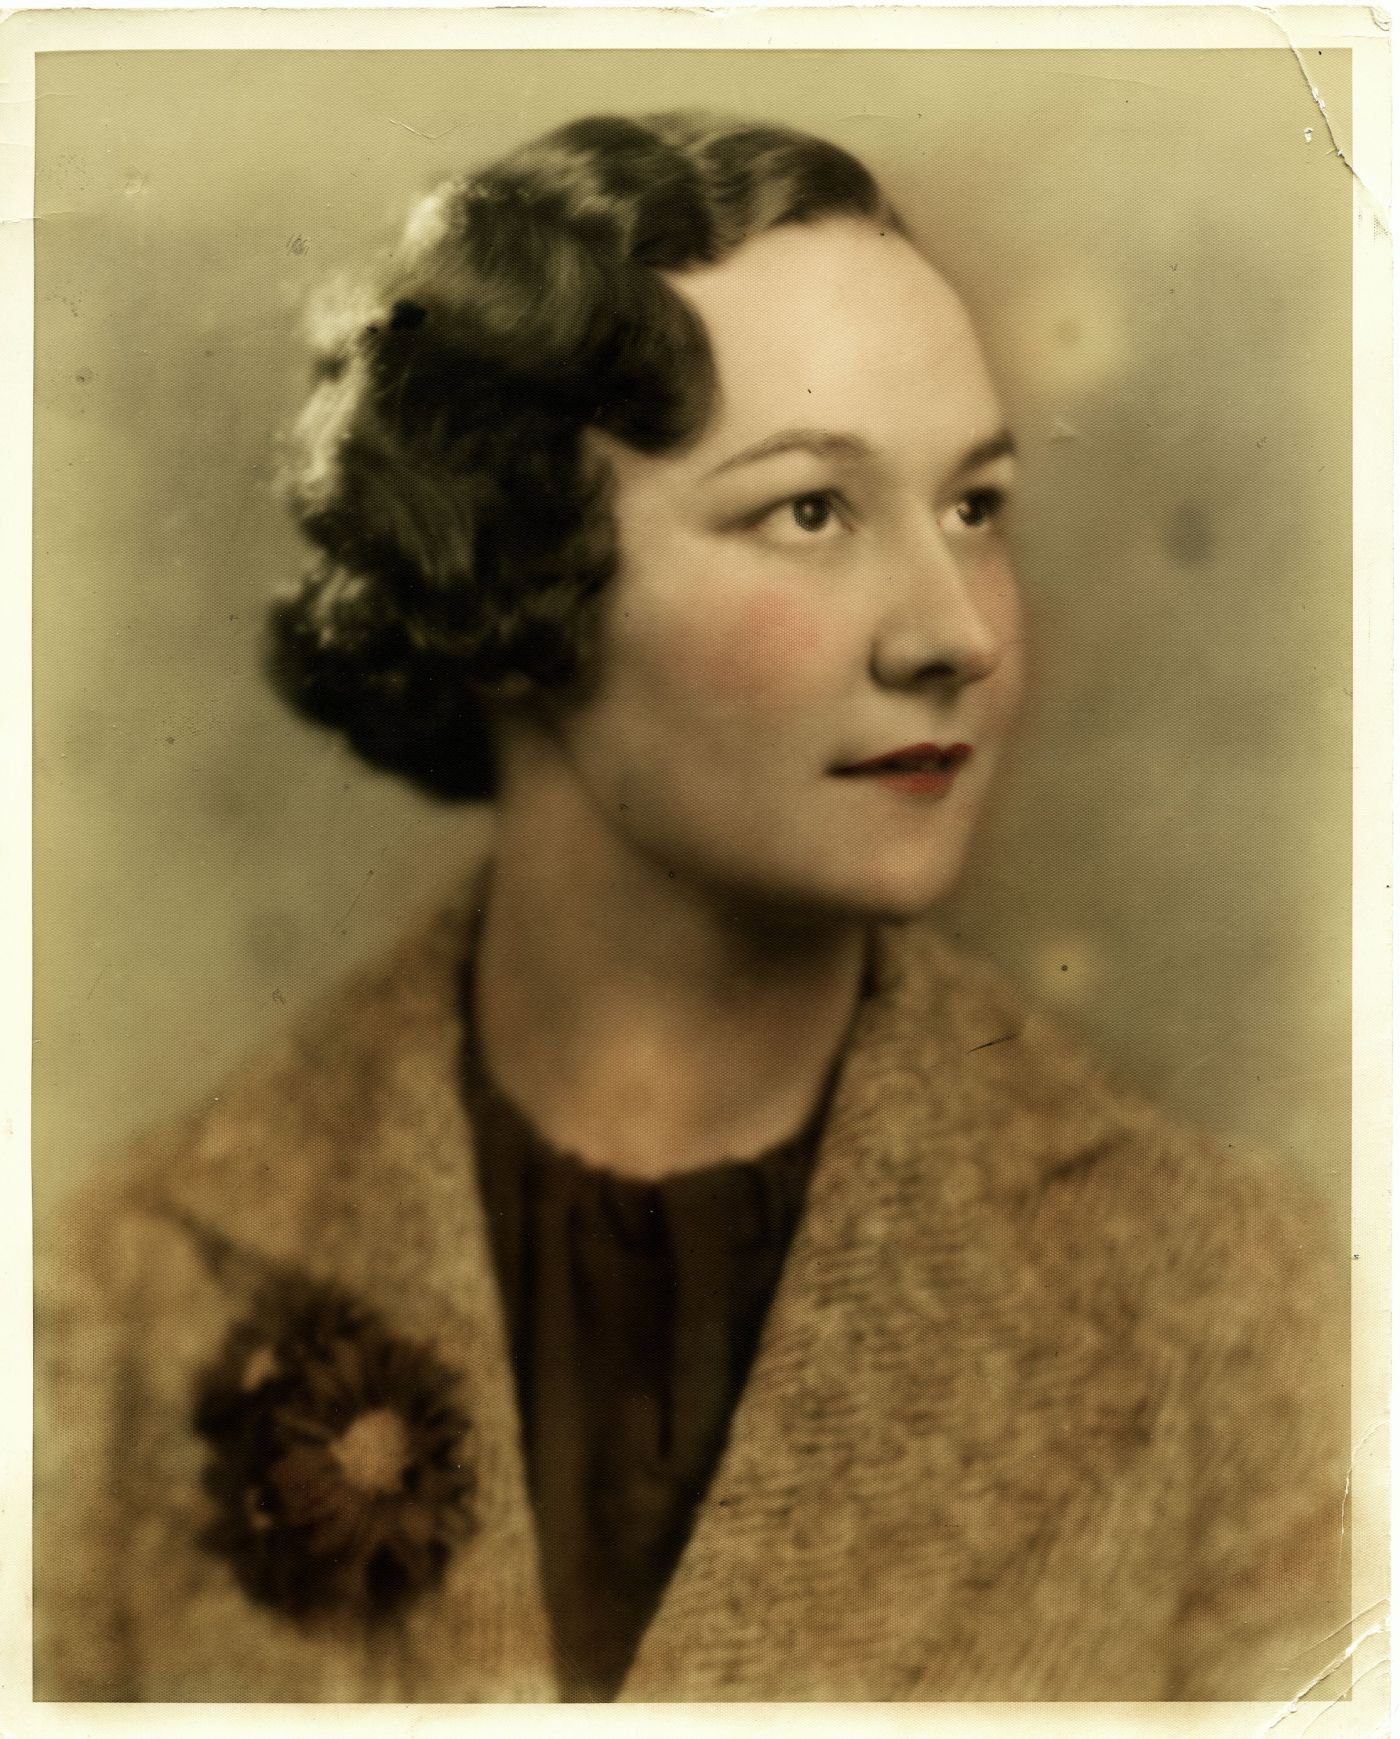 Colour studio photograph showing the head and shoulders of a middle-aged woman in three-quarter profile view. She has short, wavyhair and wears a jacket with flowers in the buttonhole.